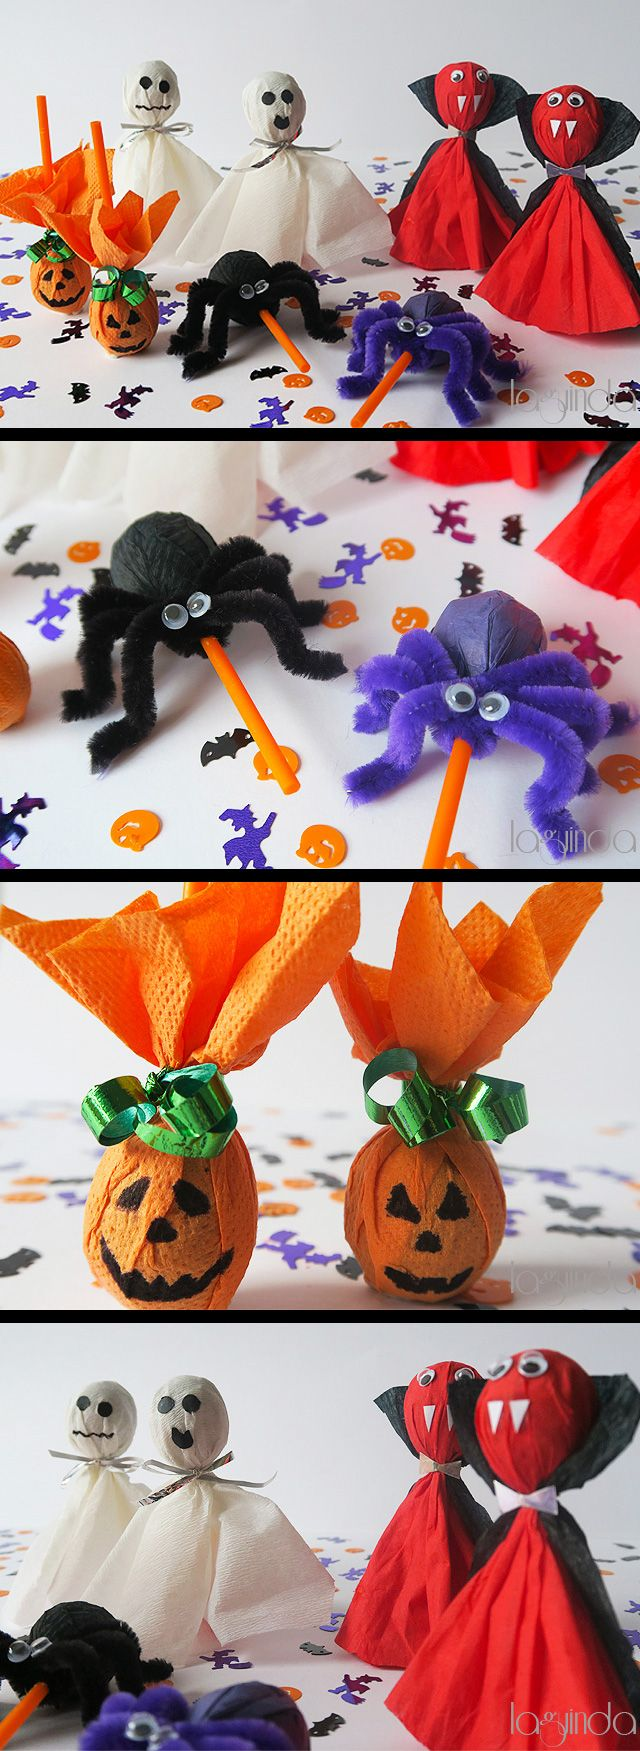 Ideas Para Decorar Halloween Very Funny Way To Make Halloween Lollipops Idea Divertidísima